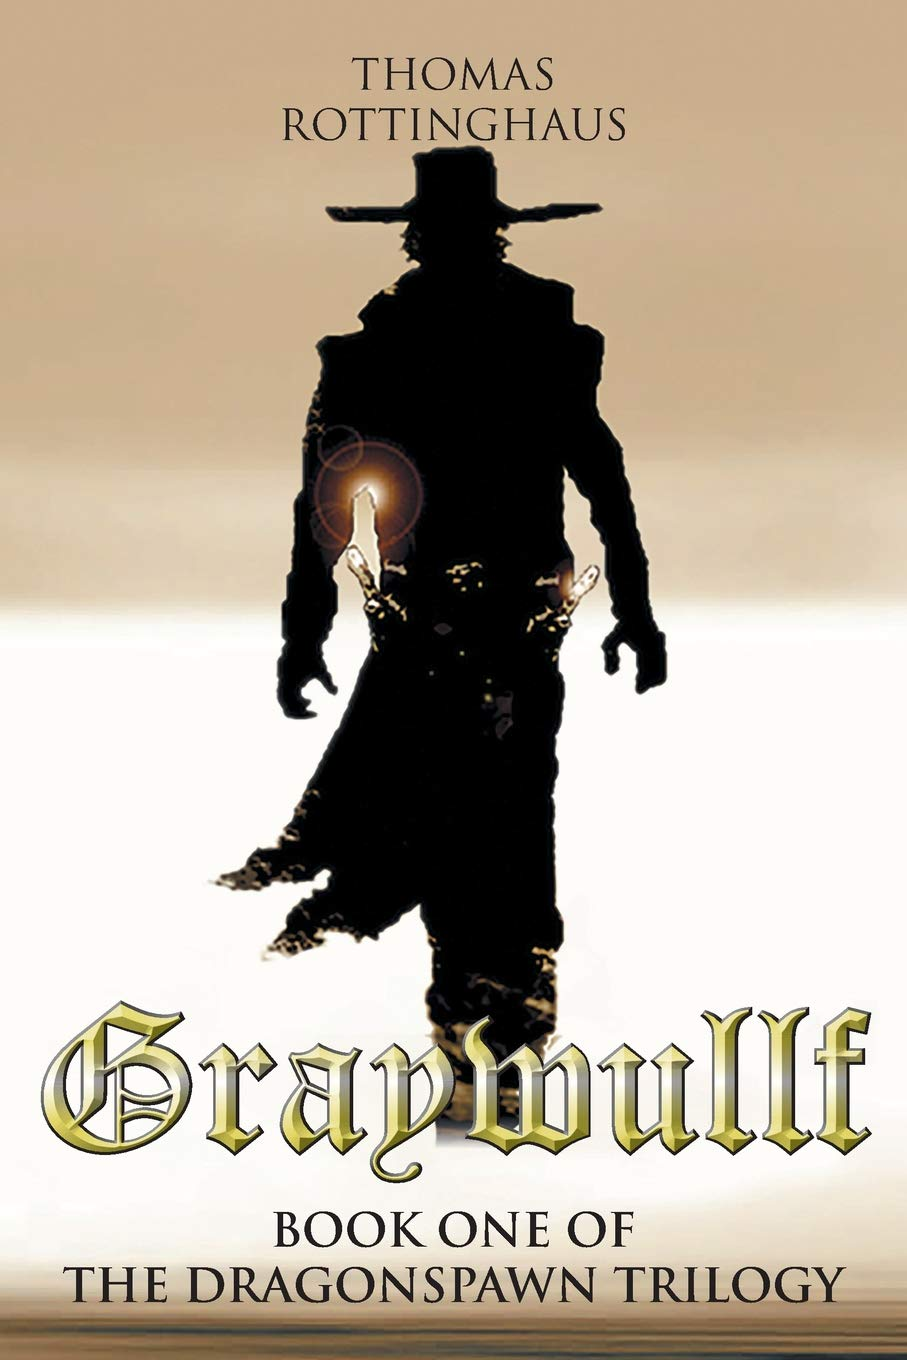 Graywullf: Book One of the Dragonspawn Trilogy by Thomas Rottinghaus Available on Amazon